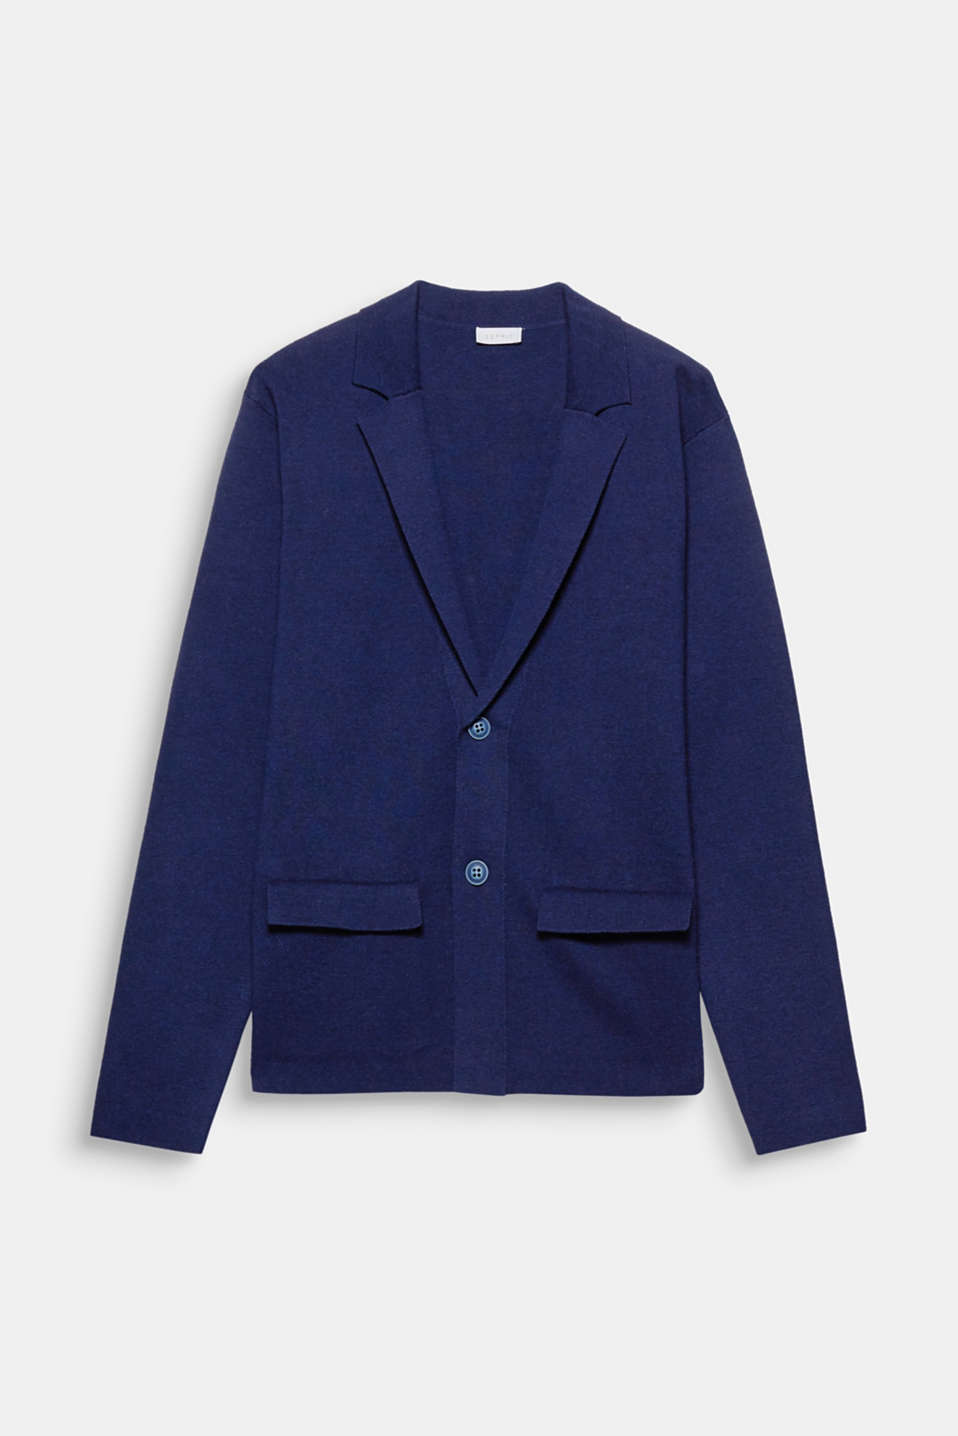 We love knitwear! The fine knit gives this blazer a cool but fine look.